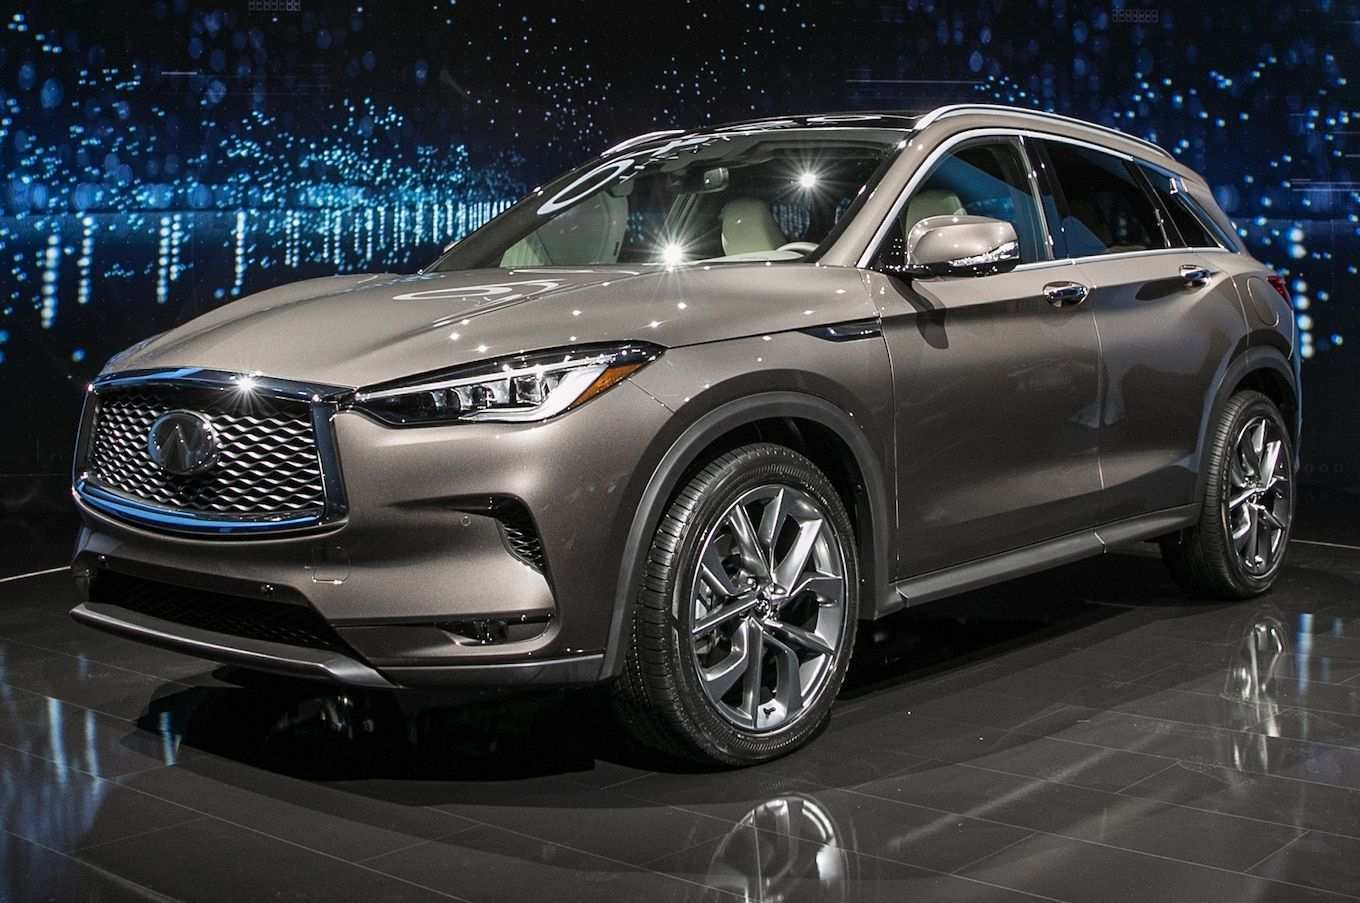 49 The 2020 Infiniti Qx50 Exterior Colors New Review by 2020 Infiniti Qx50 Exterior Colors